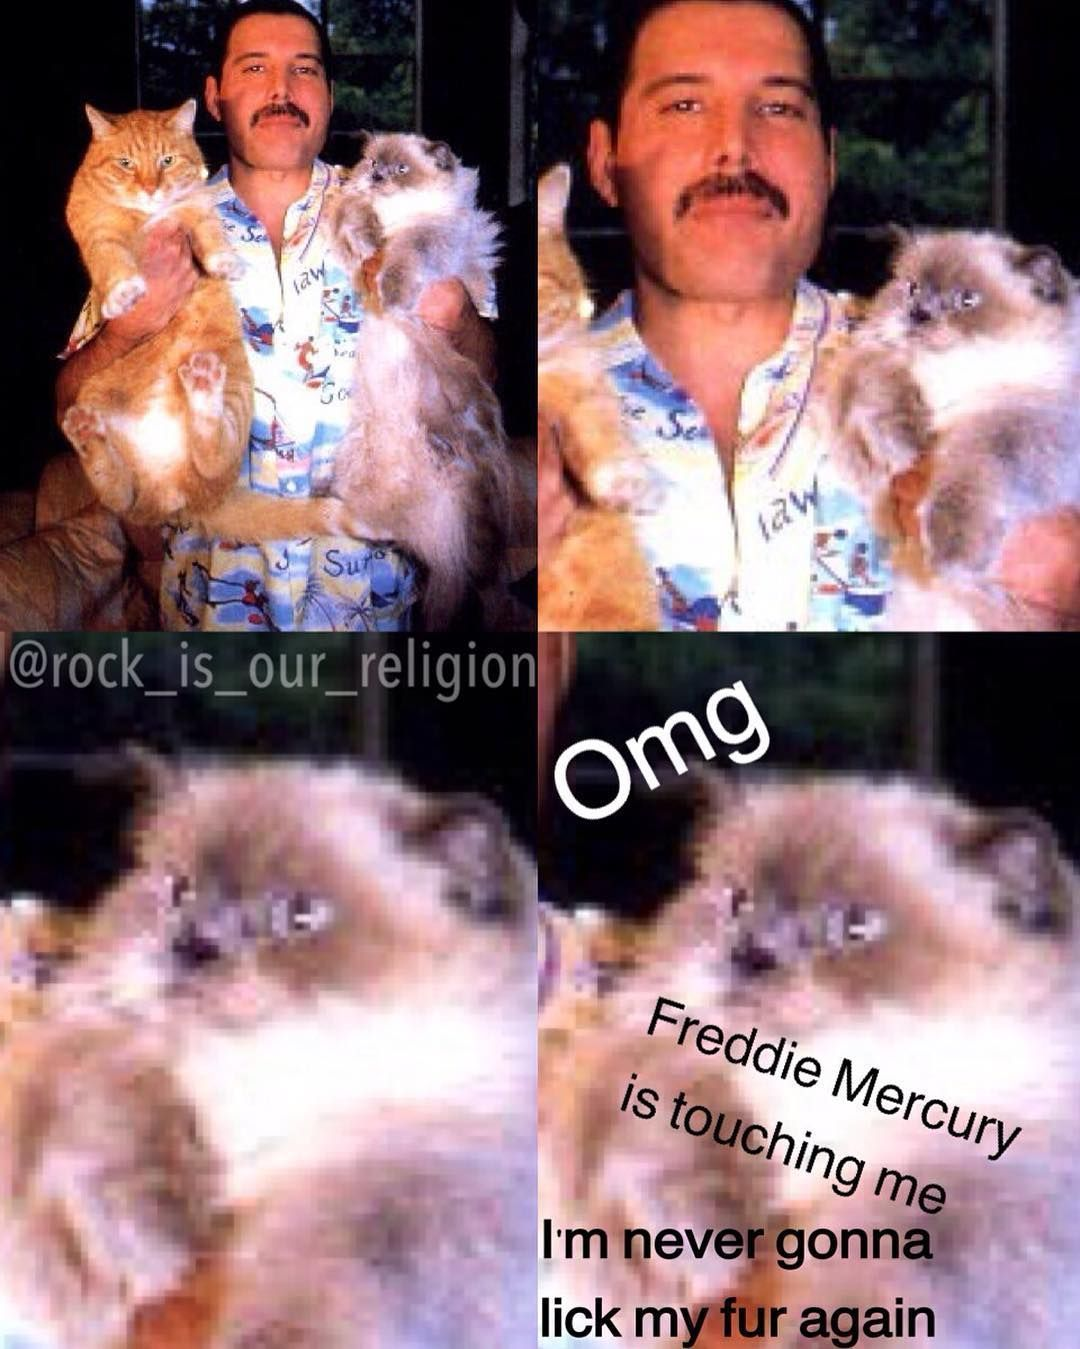 #Cat #Freddie #lives #Mercury #realizes Then the cat realizes that it lives with Freddie Mercury